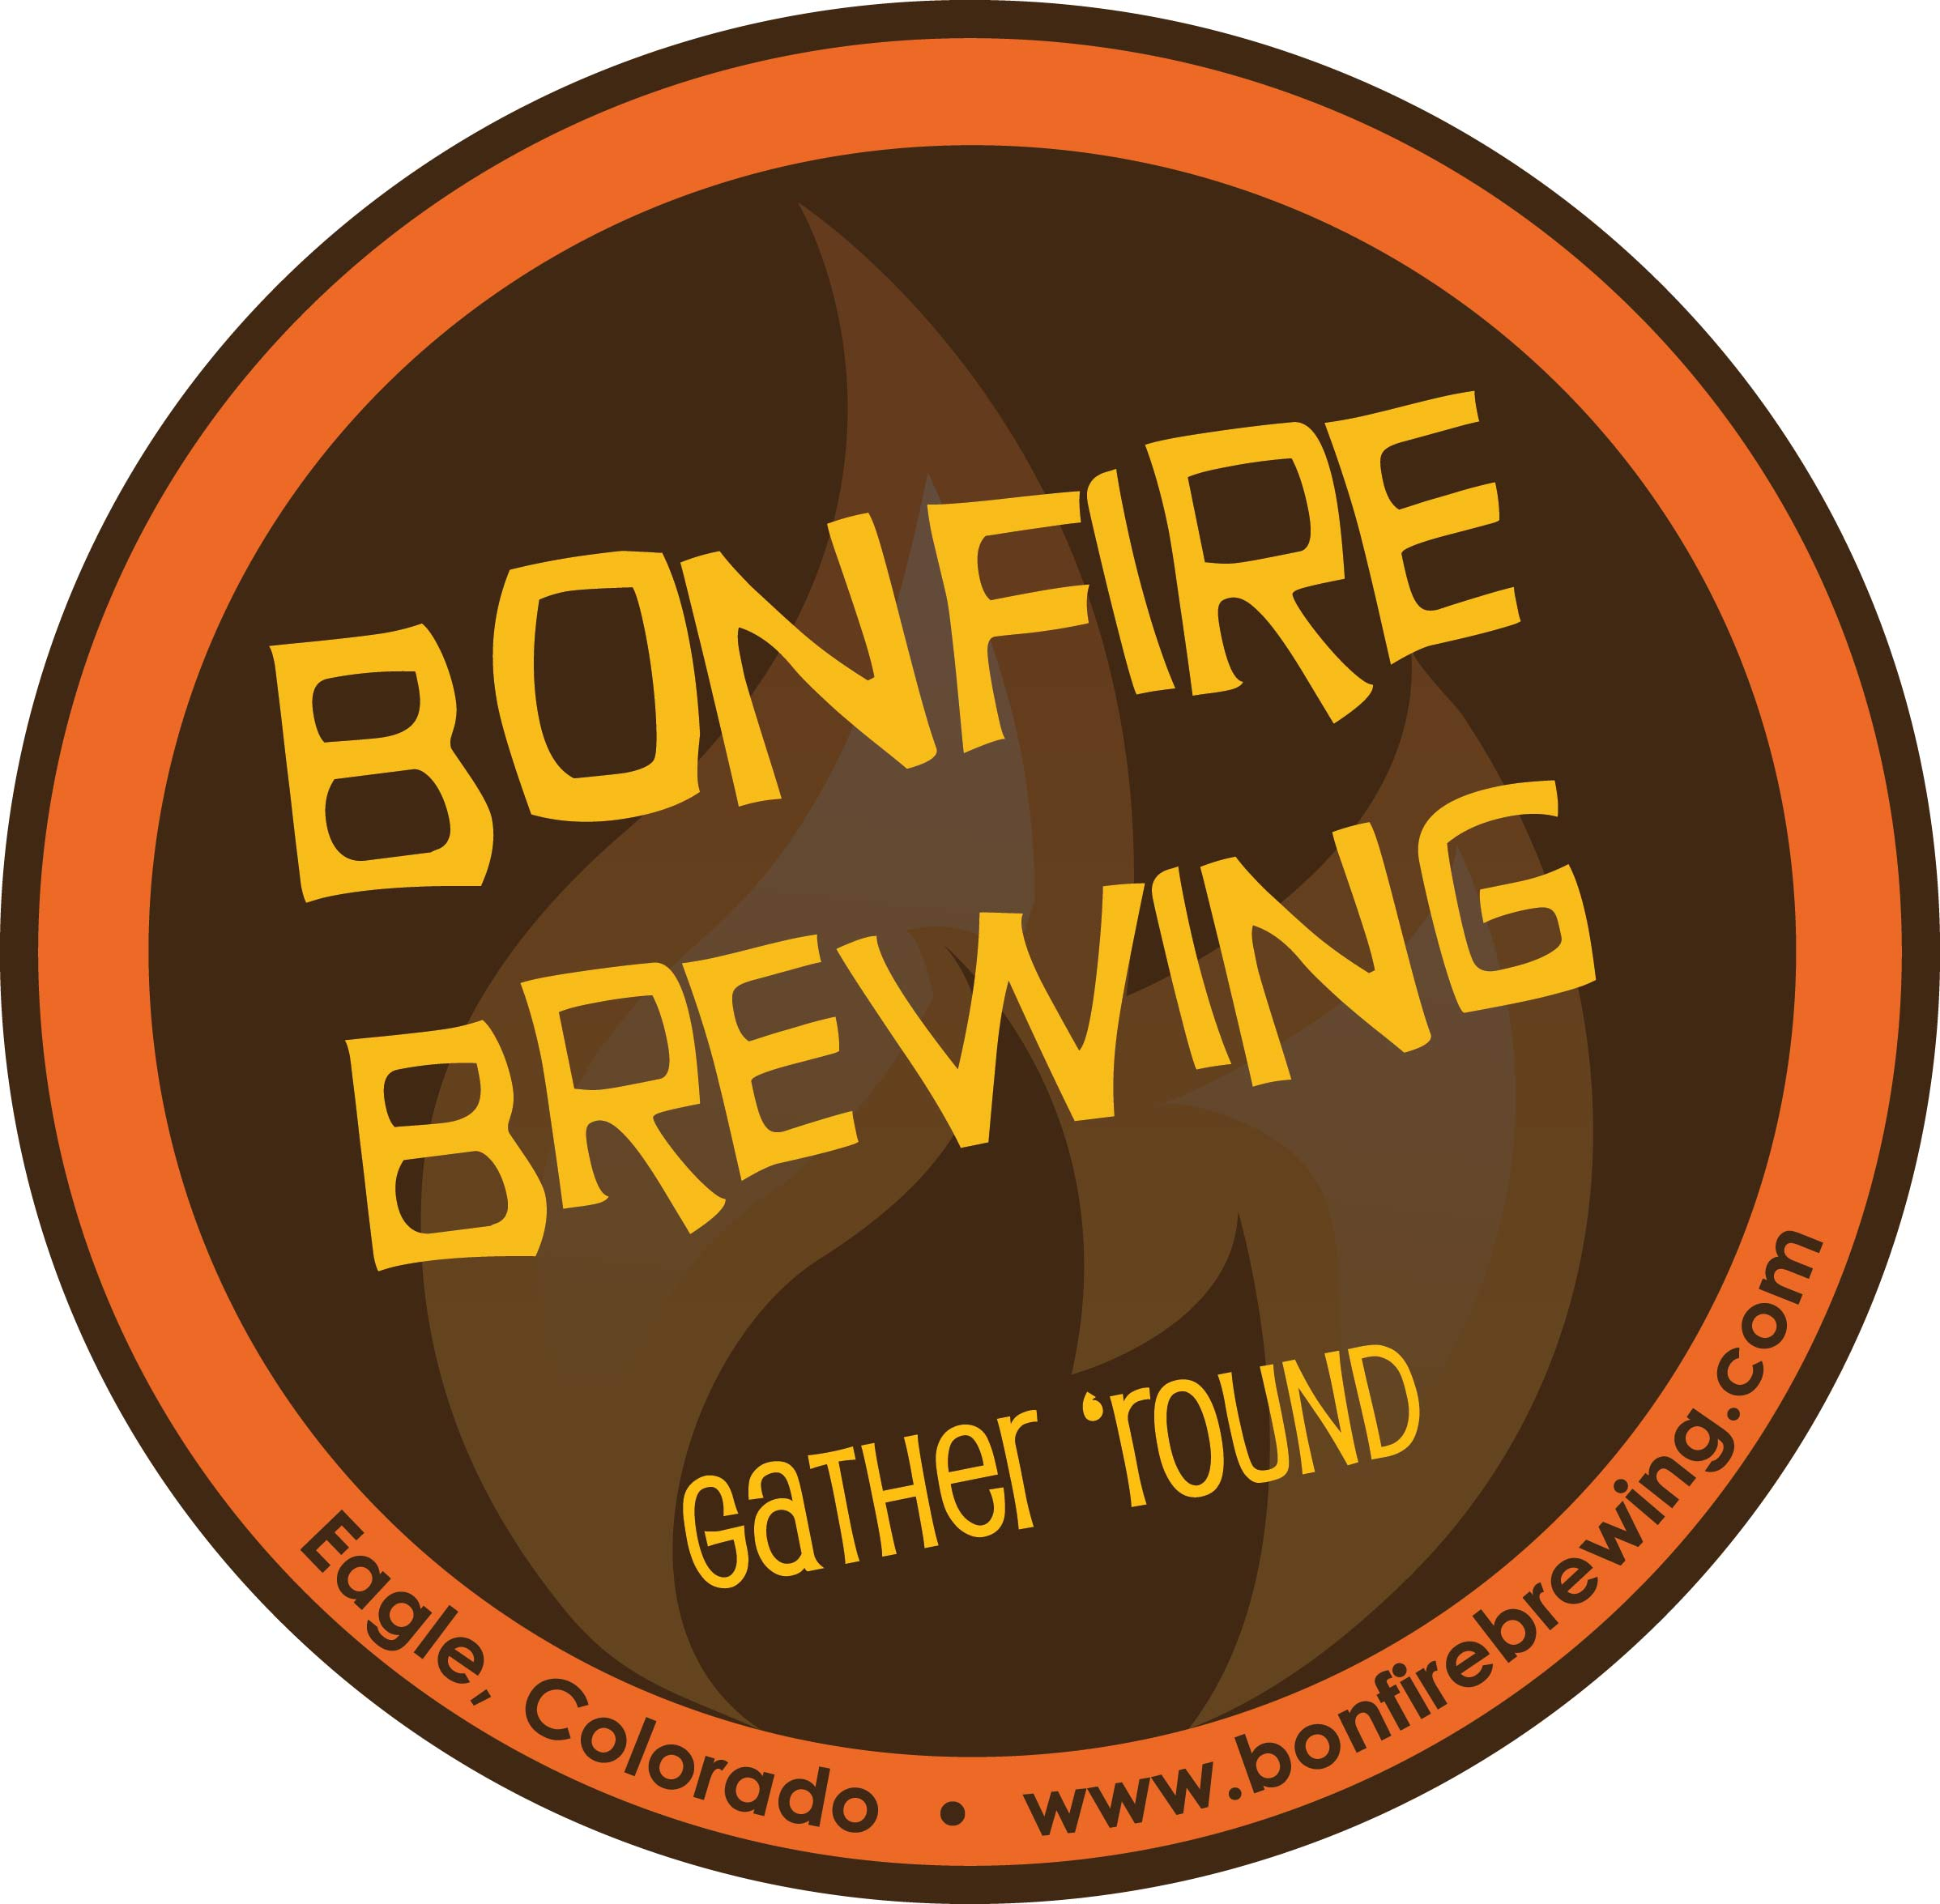 Bonfire Brewery